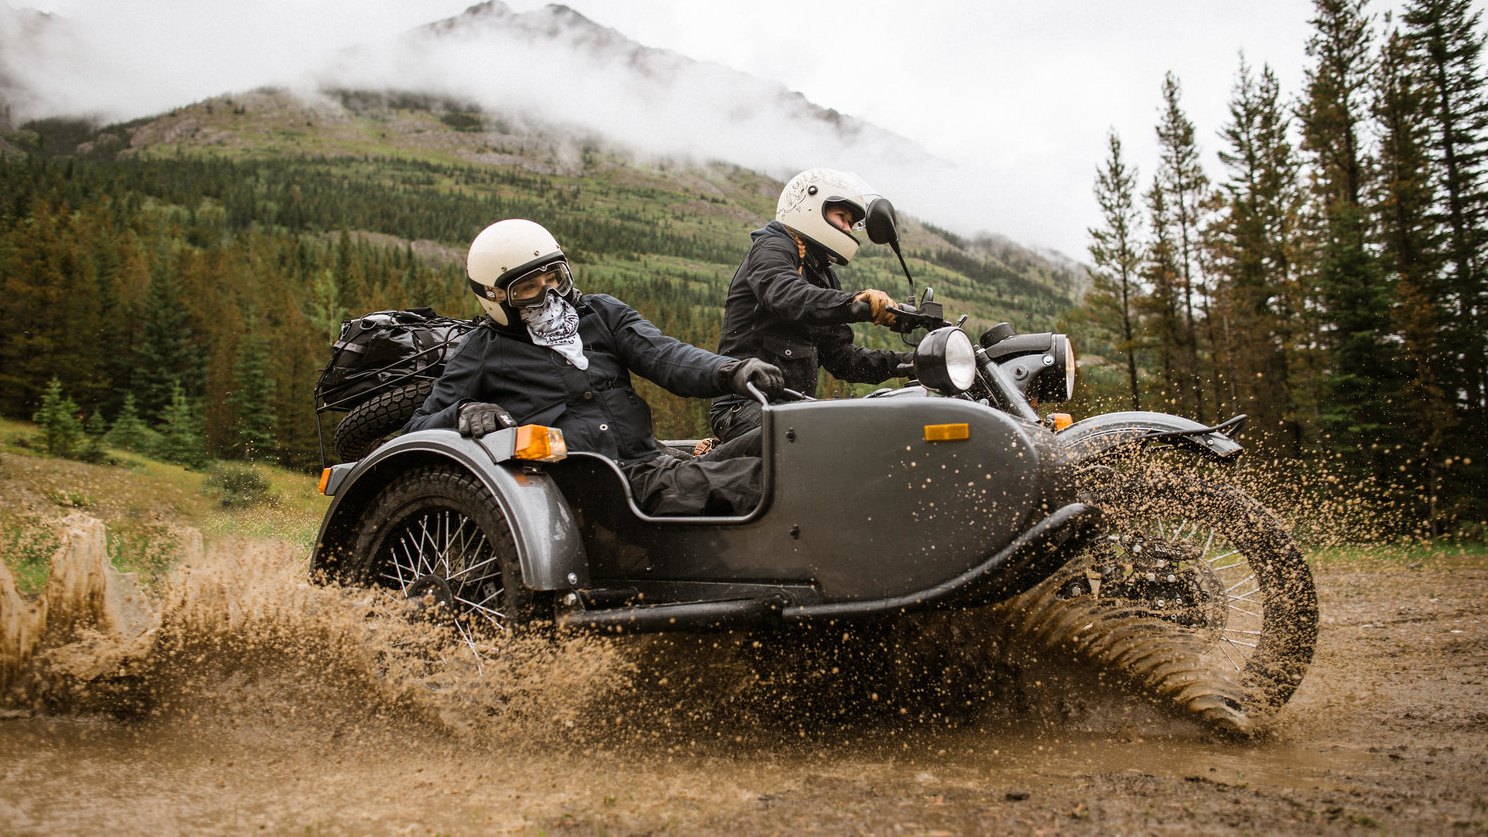 2018 Ural Gear-Up Pictures, Photos, Wallpapers